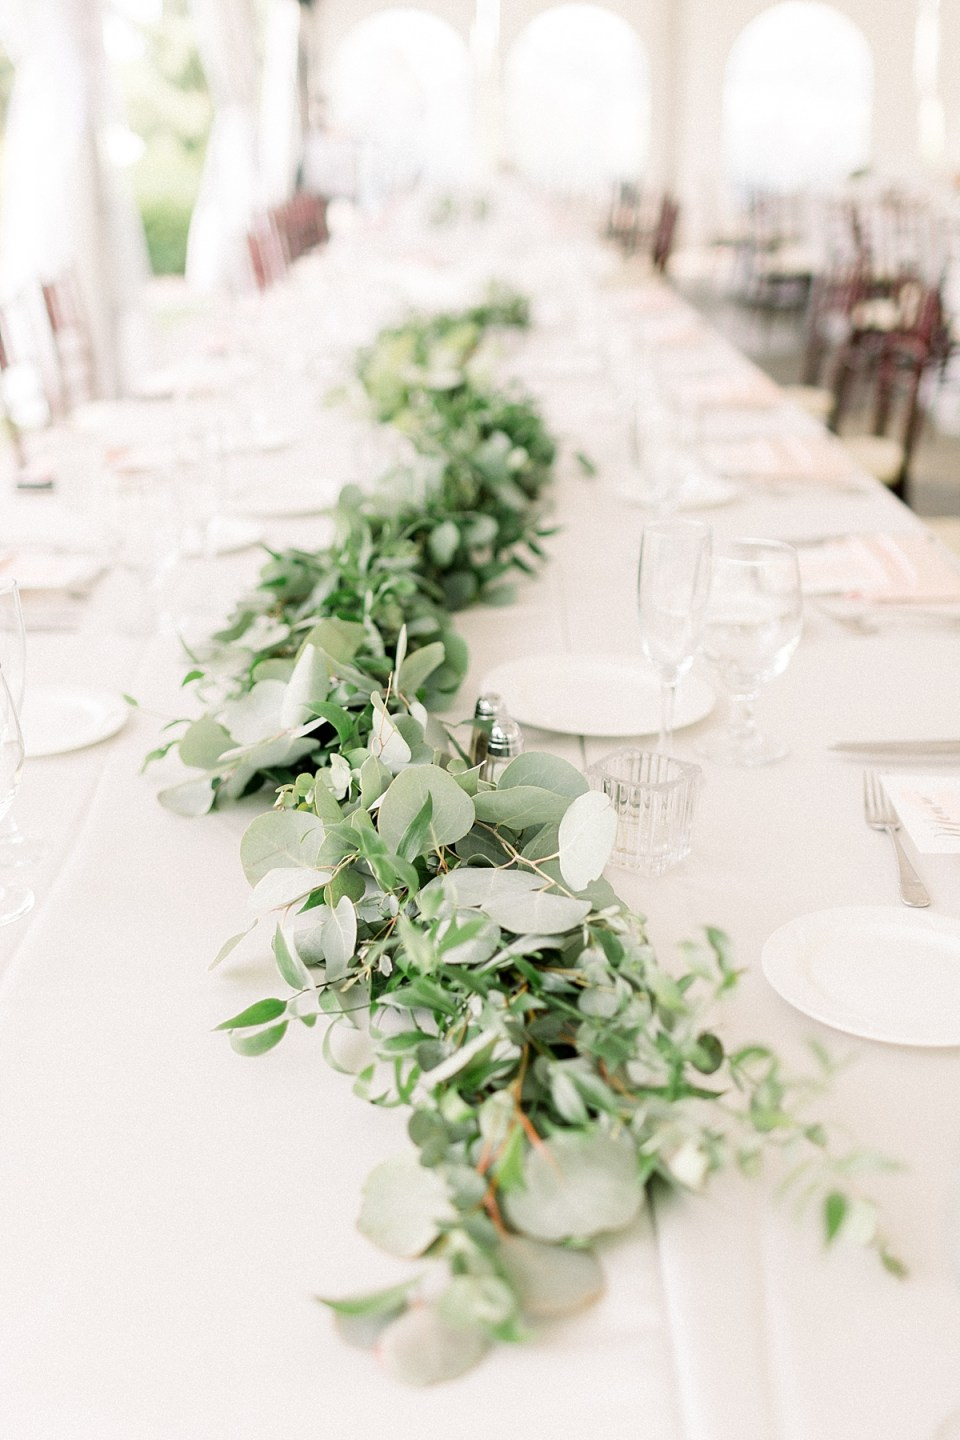 Arielle Peters Photography | Wedding reception table settings and floral arrangements at The Bridgewater Club in Carmel, Indiana on wedding day.